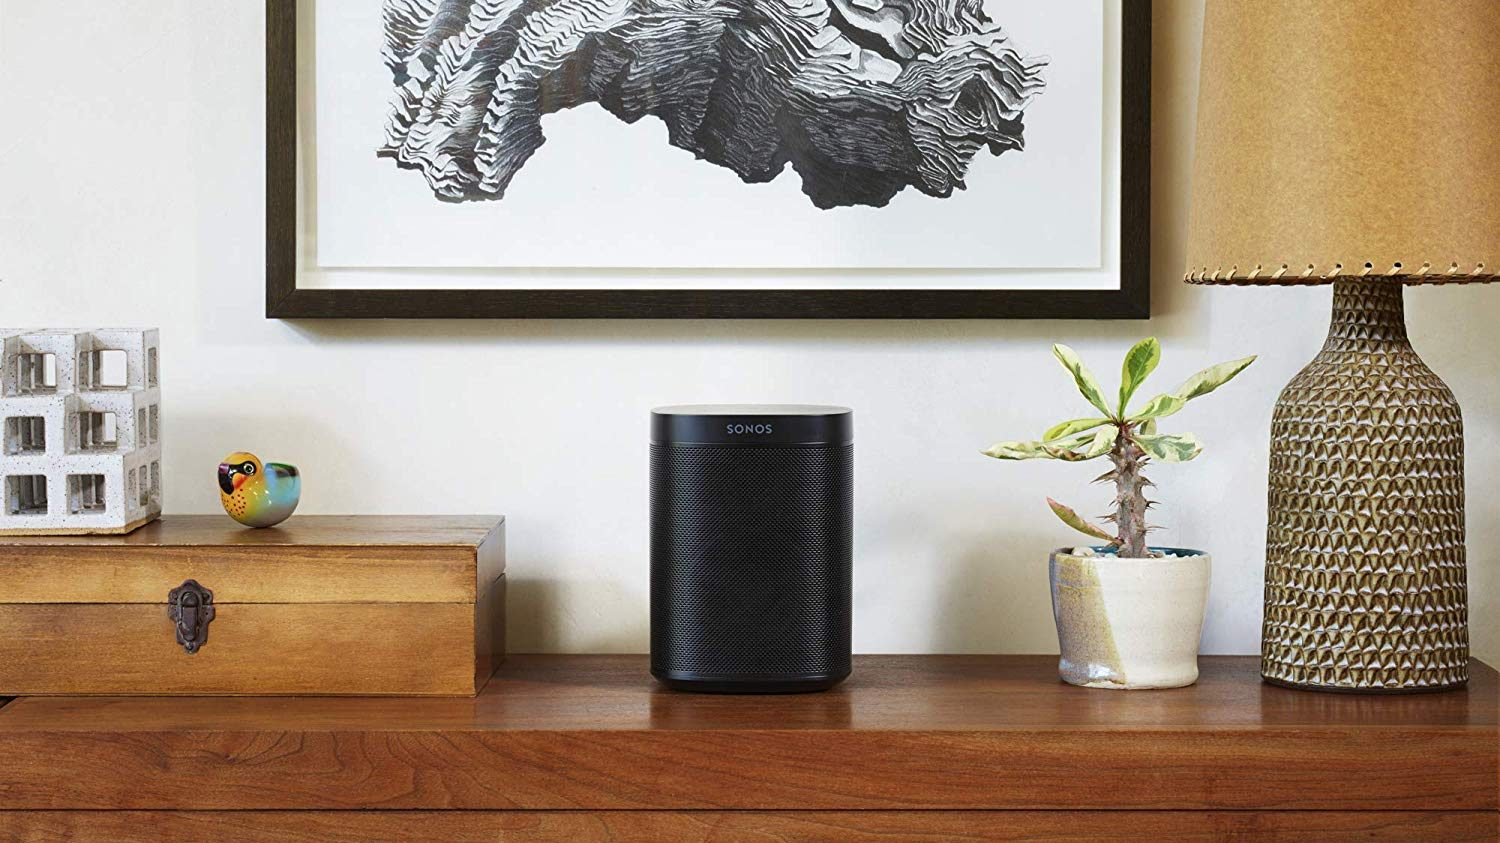 Amazon purchase slashes $40 off the Sonos Beam -- plus save $19 on a set of Sonos One speakers thumbnail